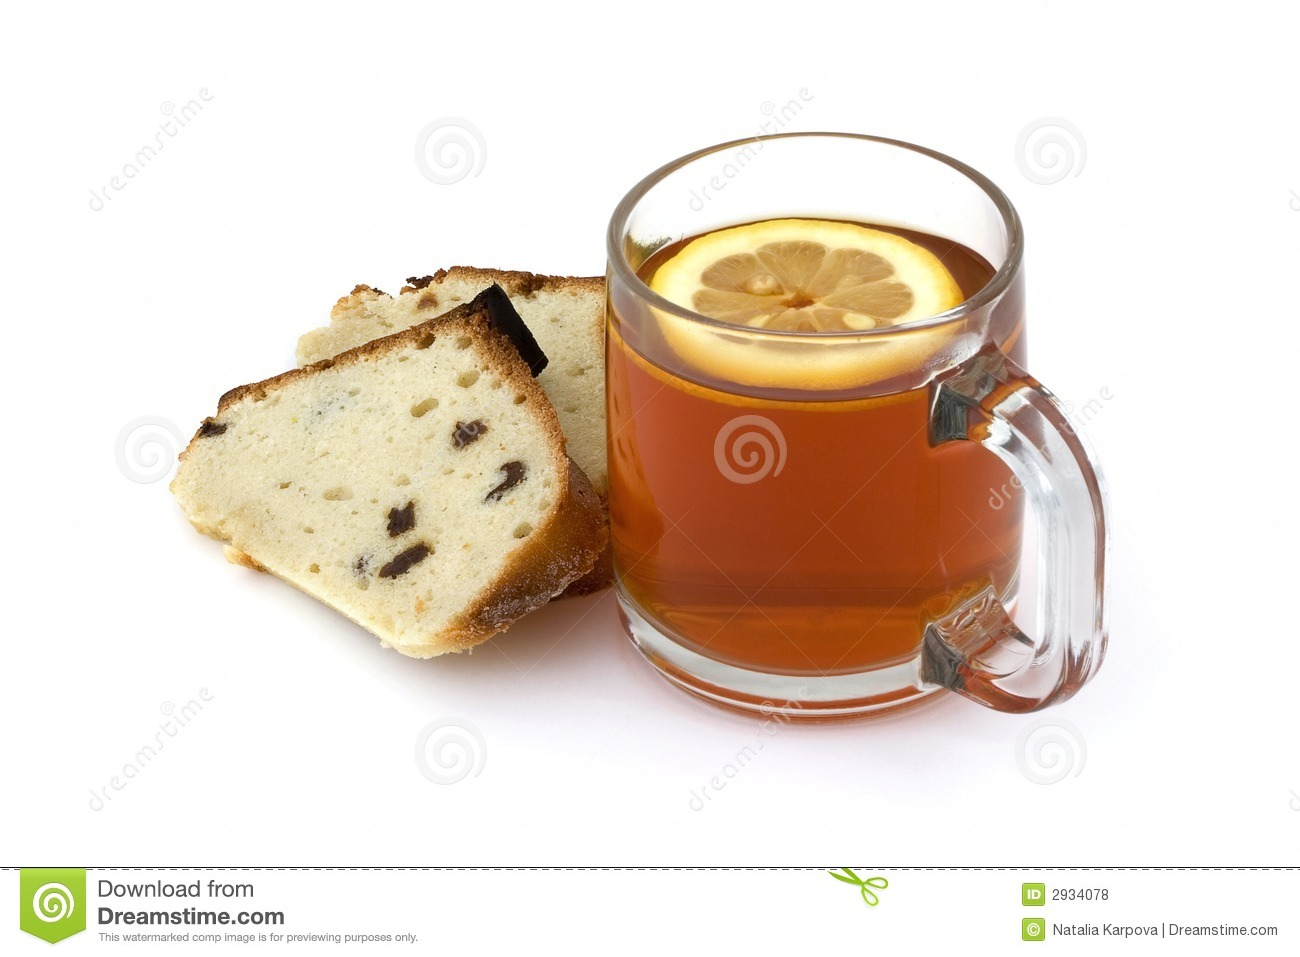 Free Clipart Tea And Cake : Tea And Cake Royalty Free Stock Photos - Image: 2934078